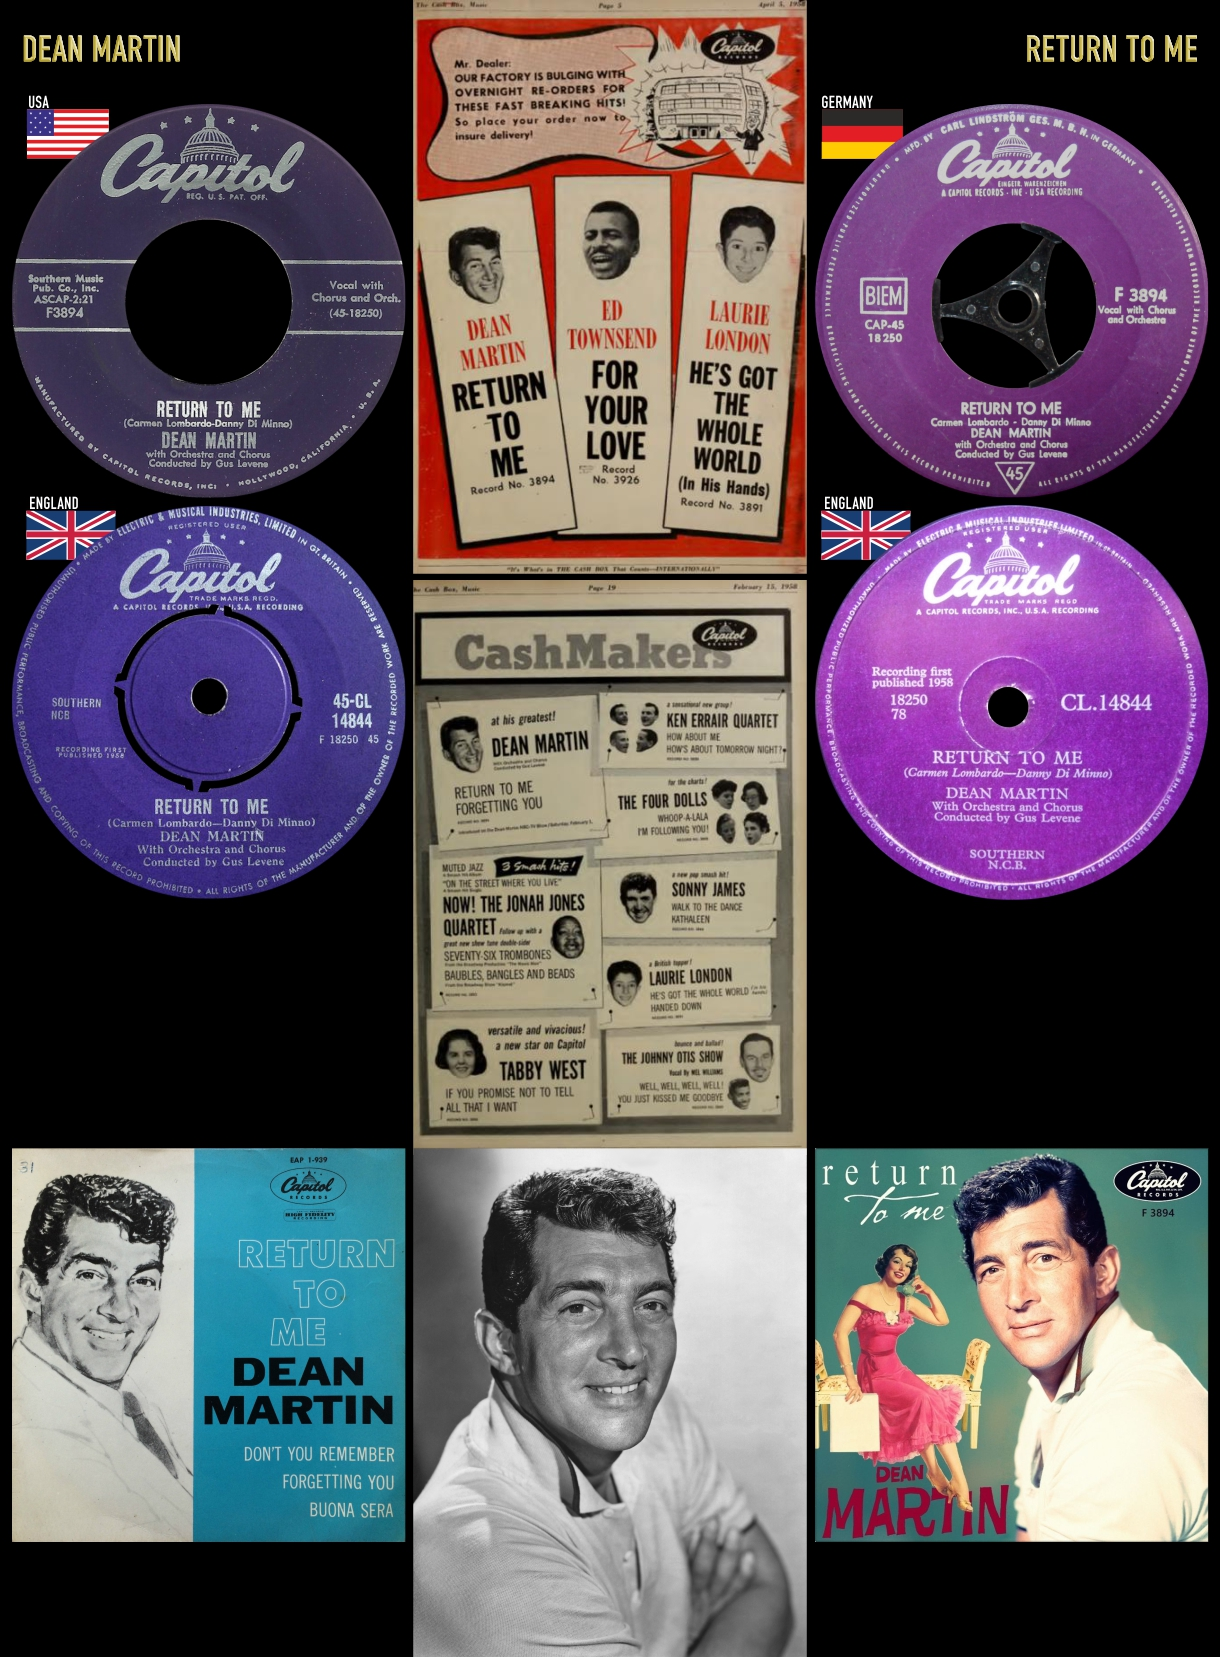 580405_Dean Martin_Return To Me